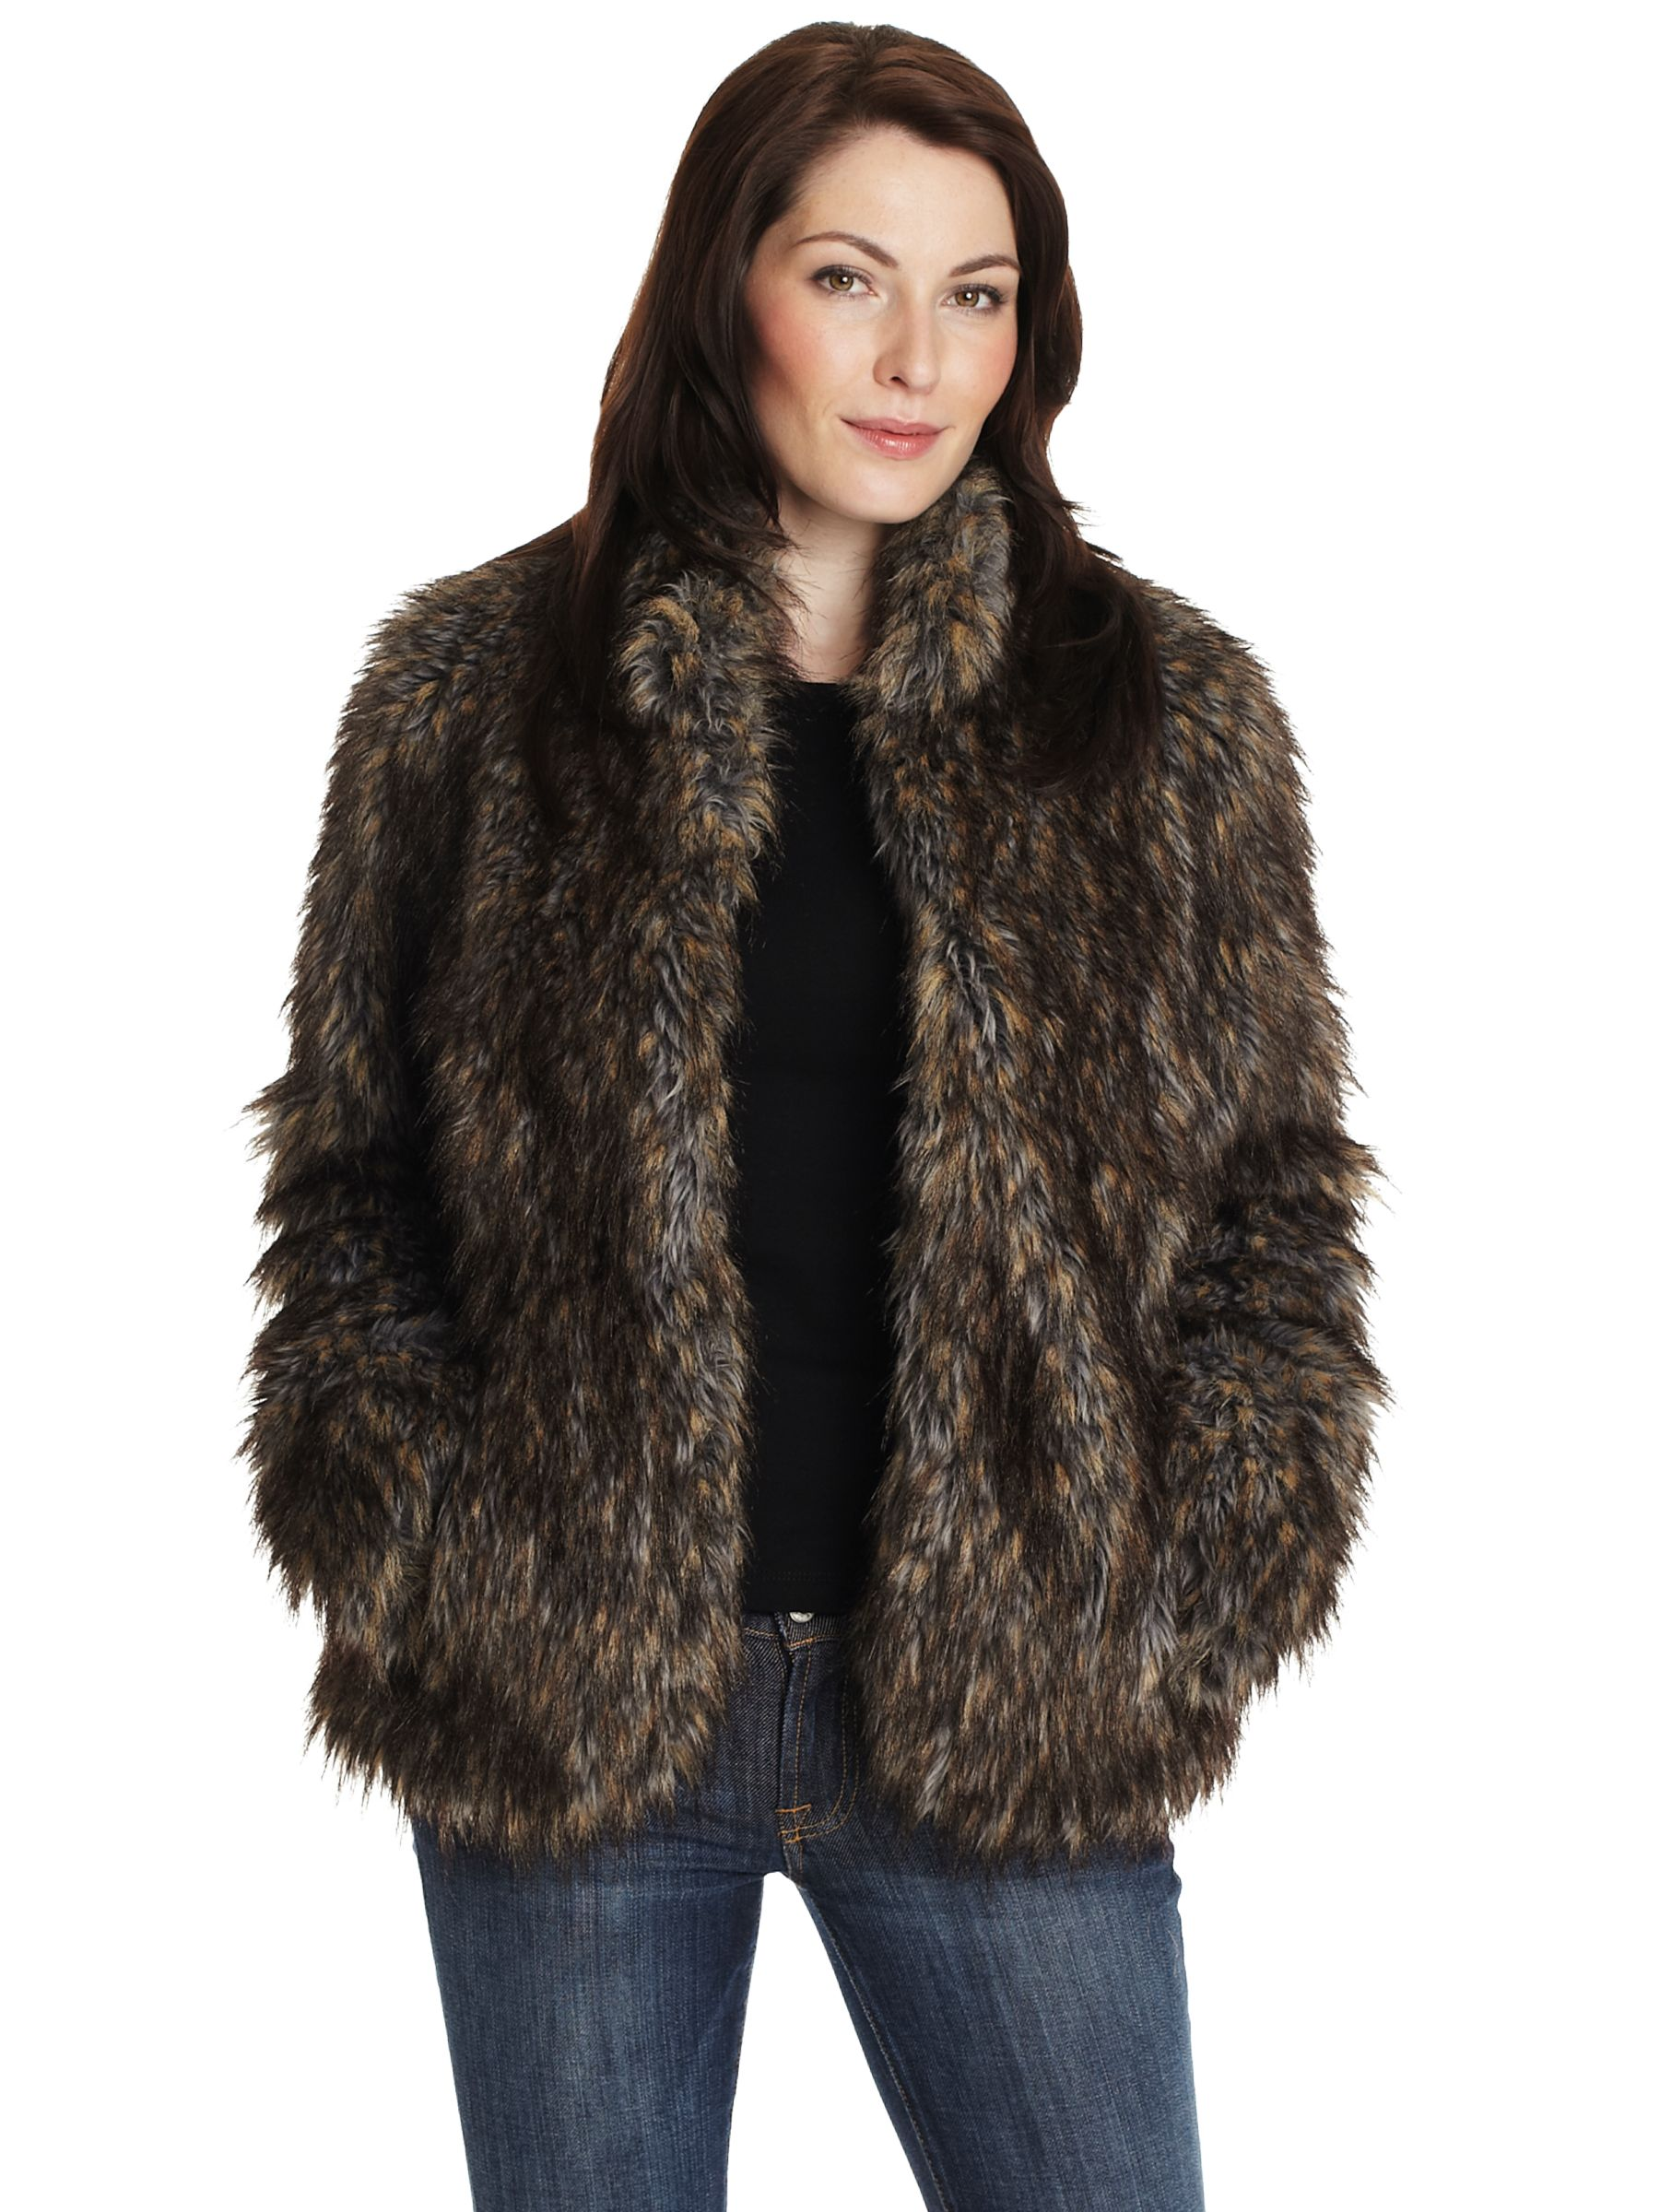 Four Seasons Fur Coat, Brown at John Lewis